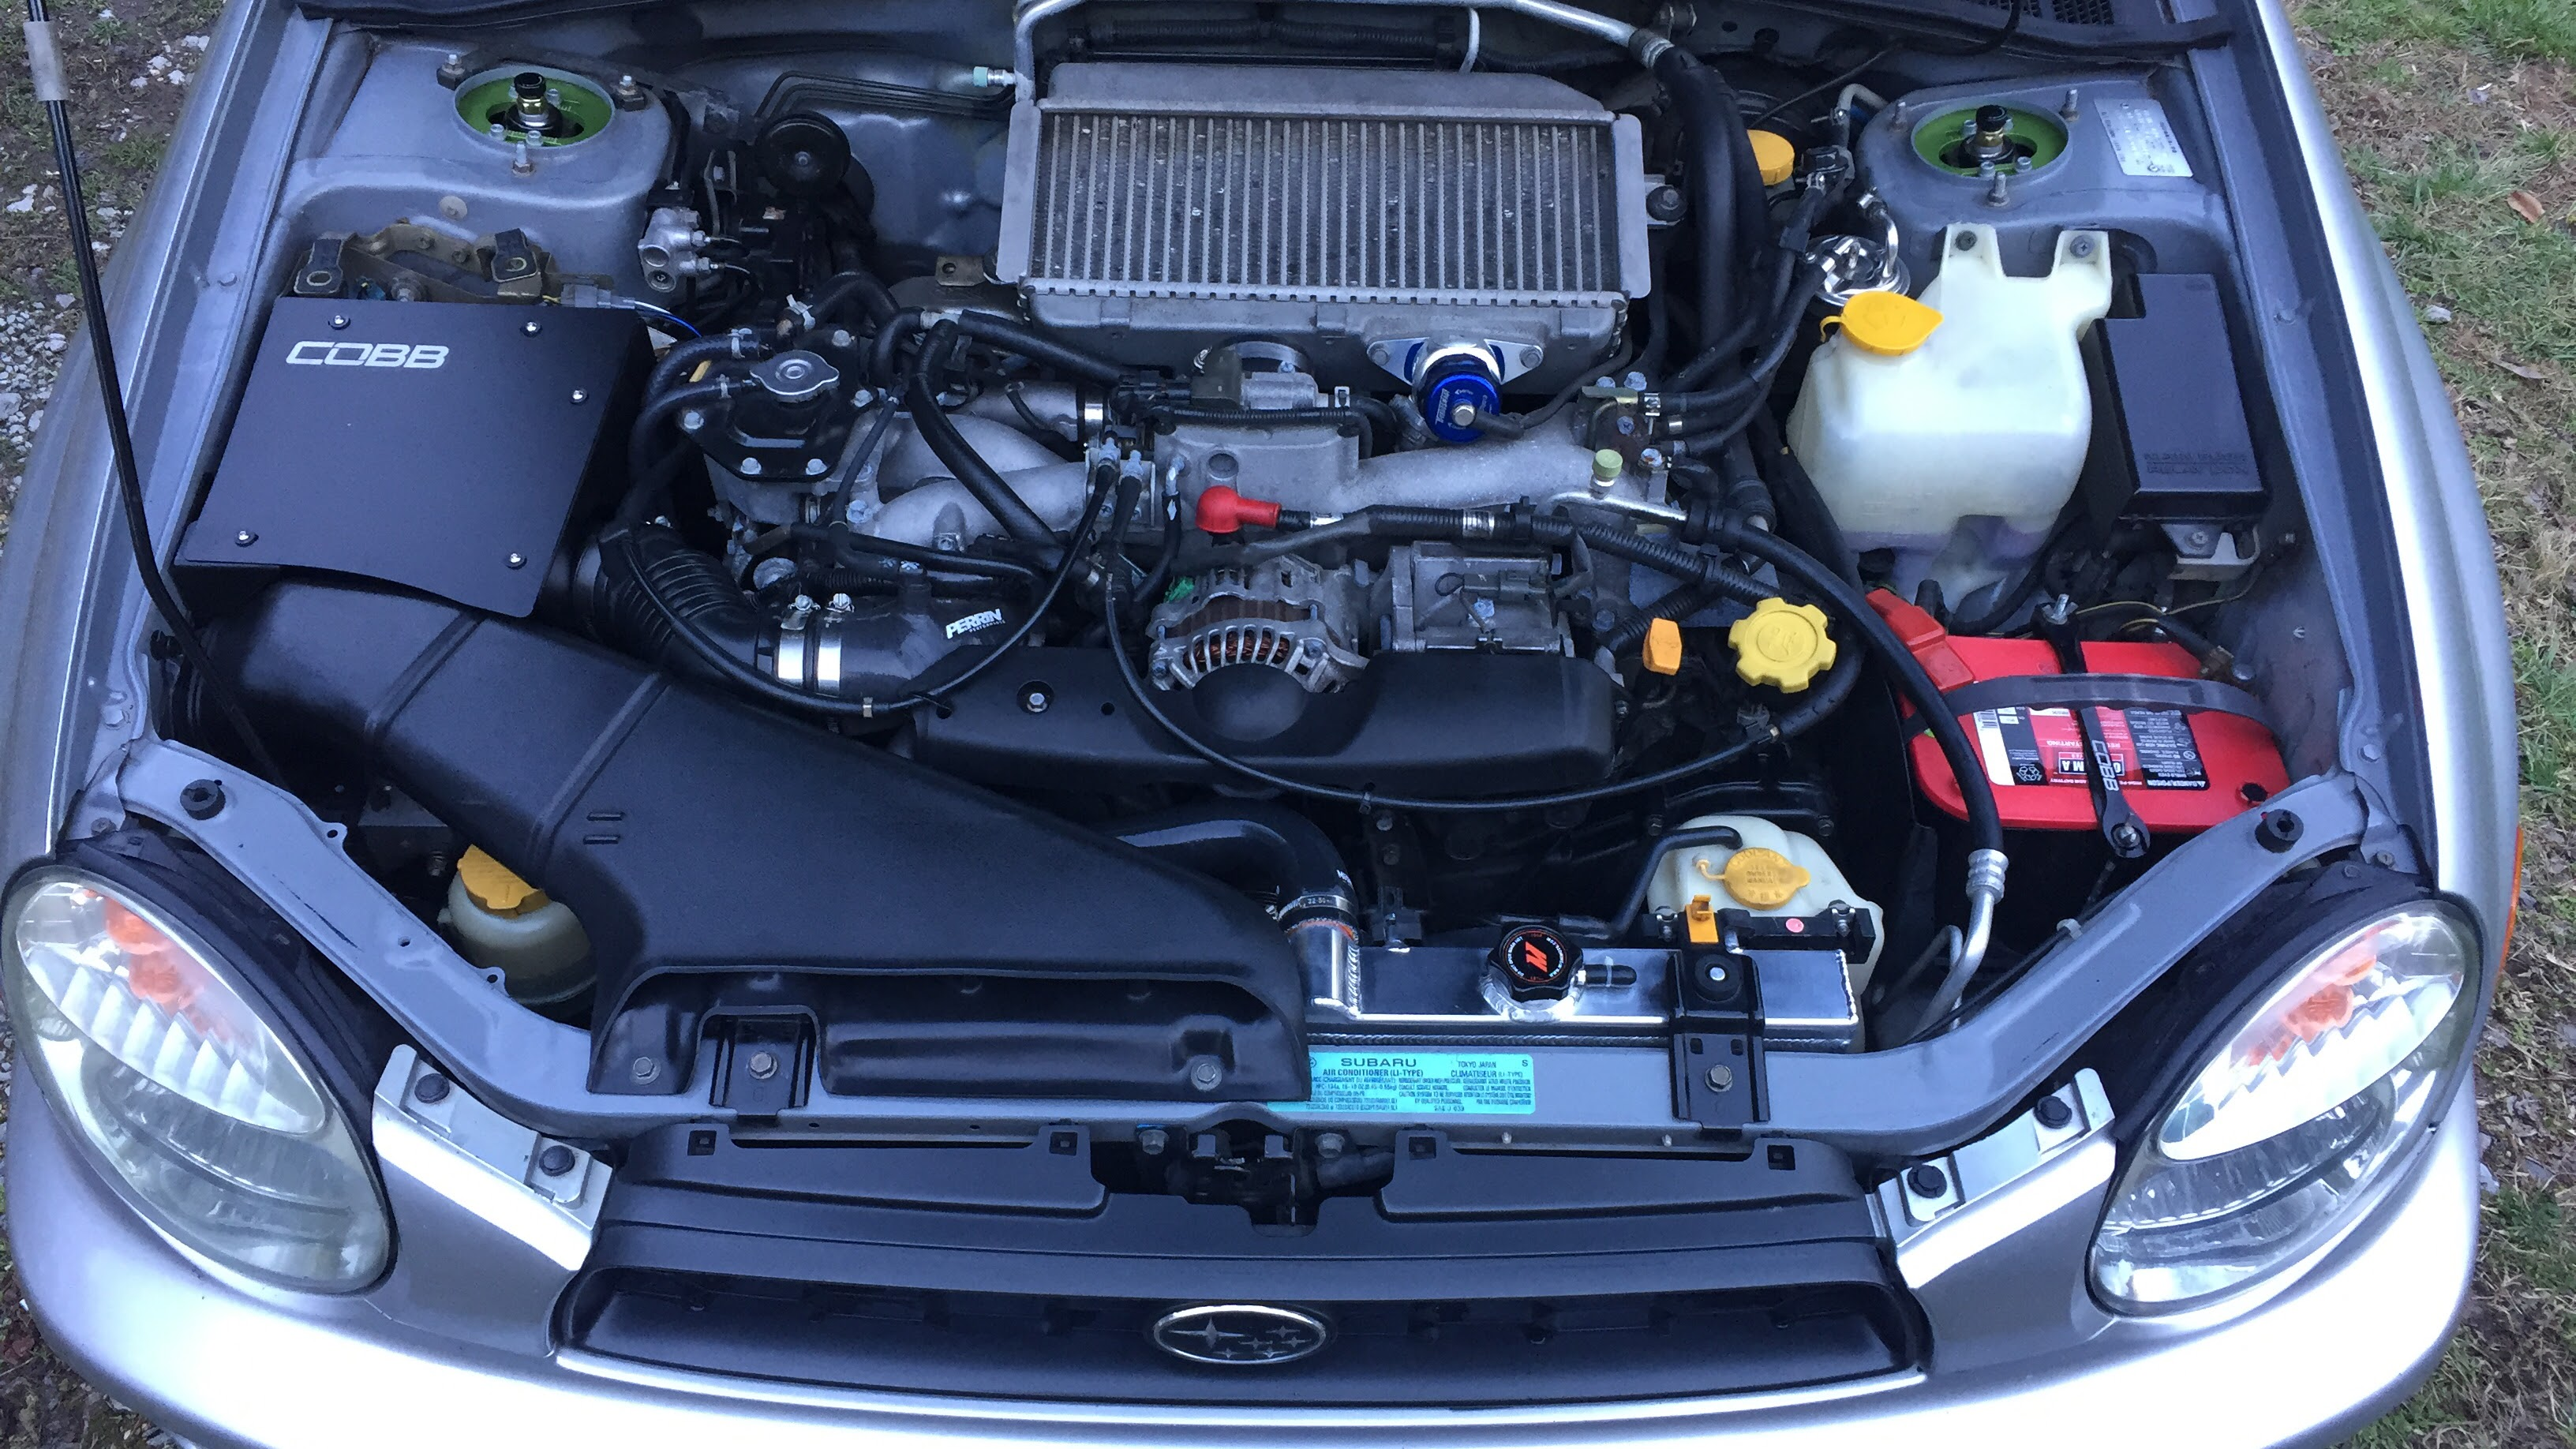 COBB Tuning SF Intake and Airbox, Mishimoto Radiator & Mishimoto Silicone Radiator Hose Install - 19170787